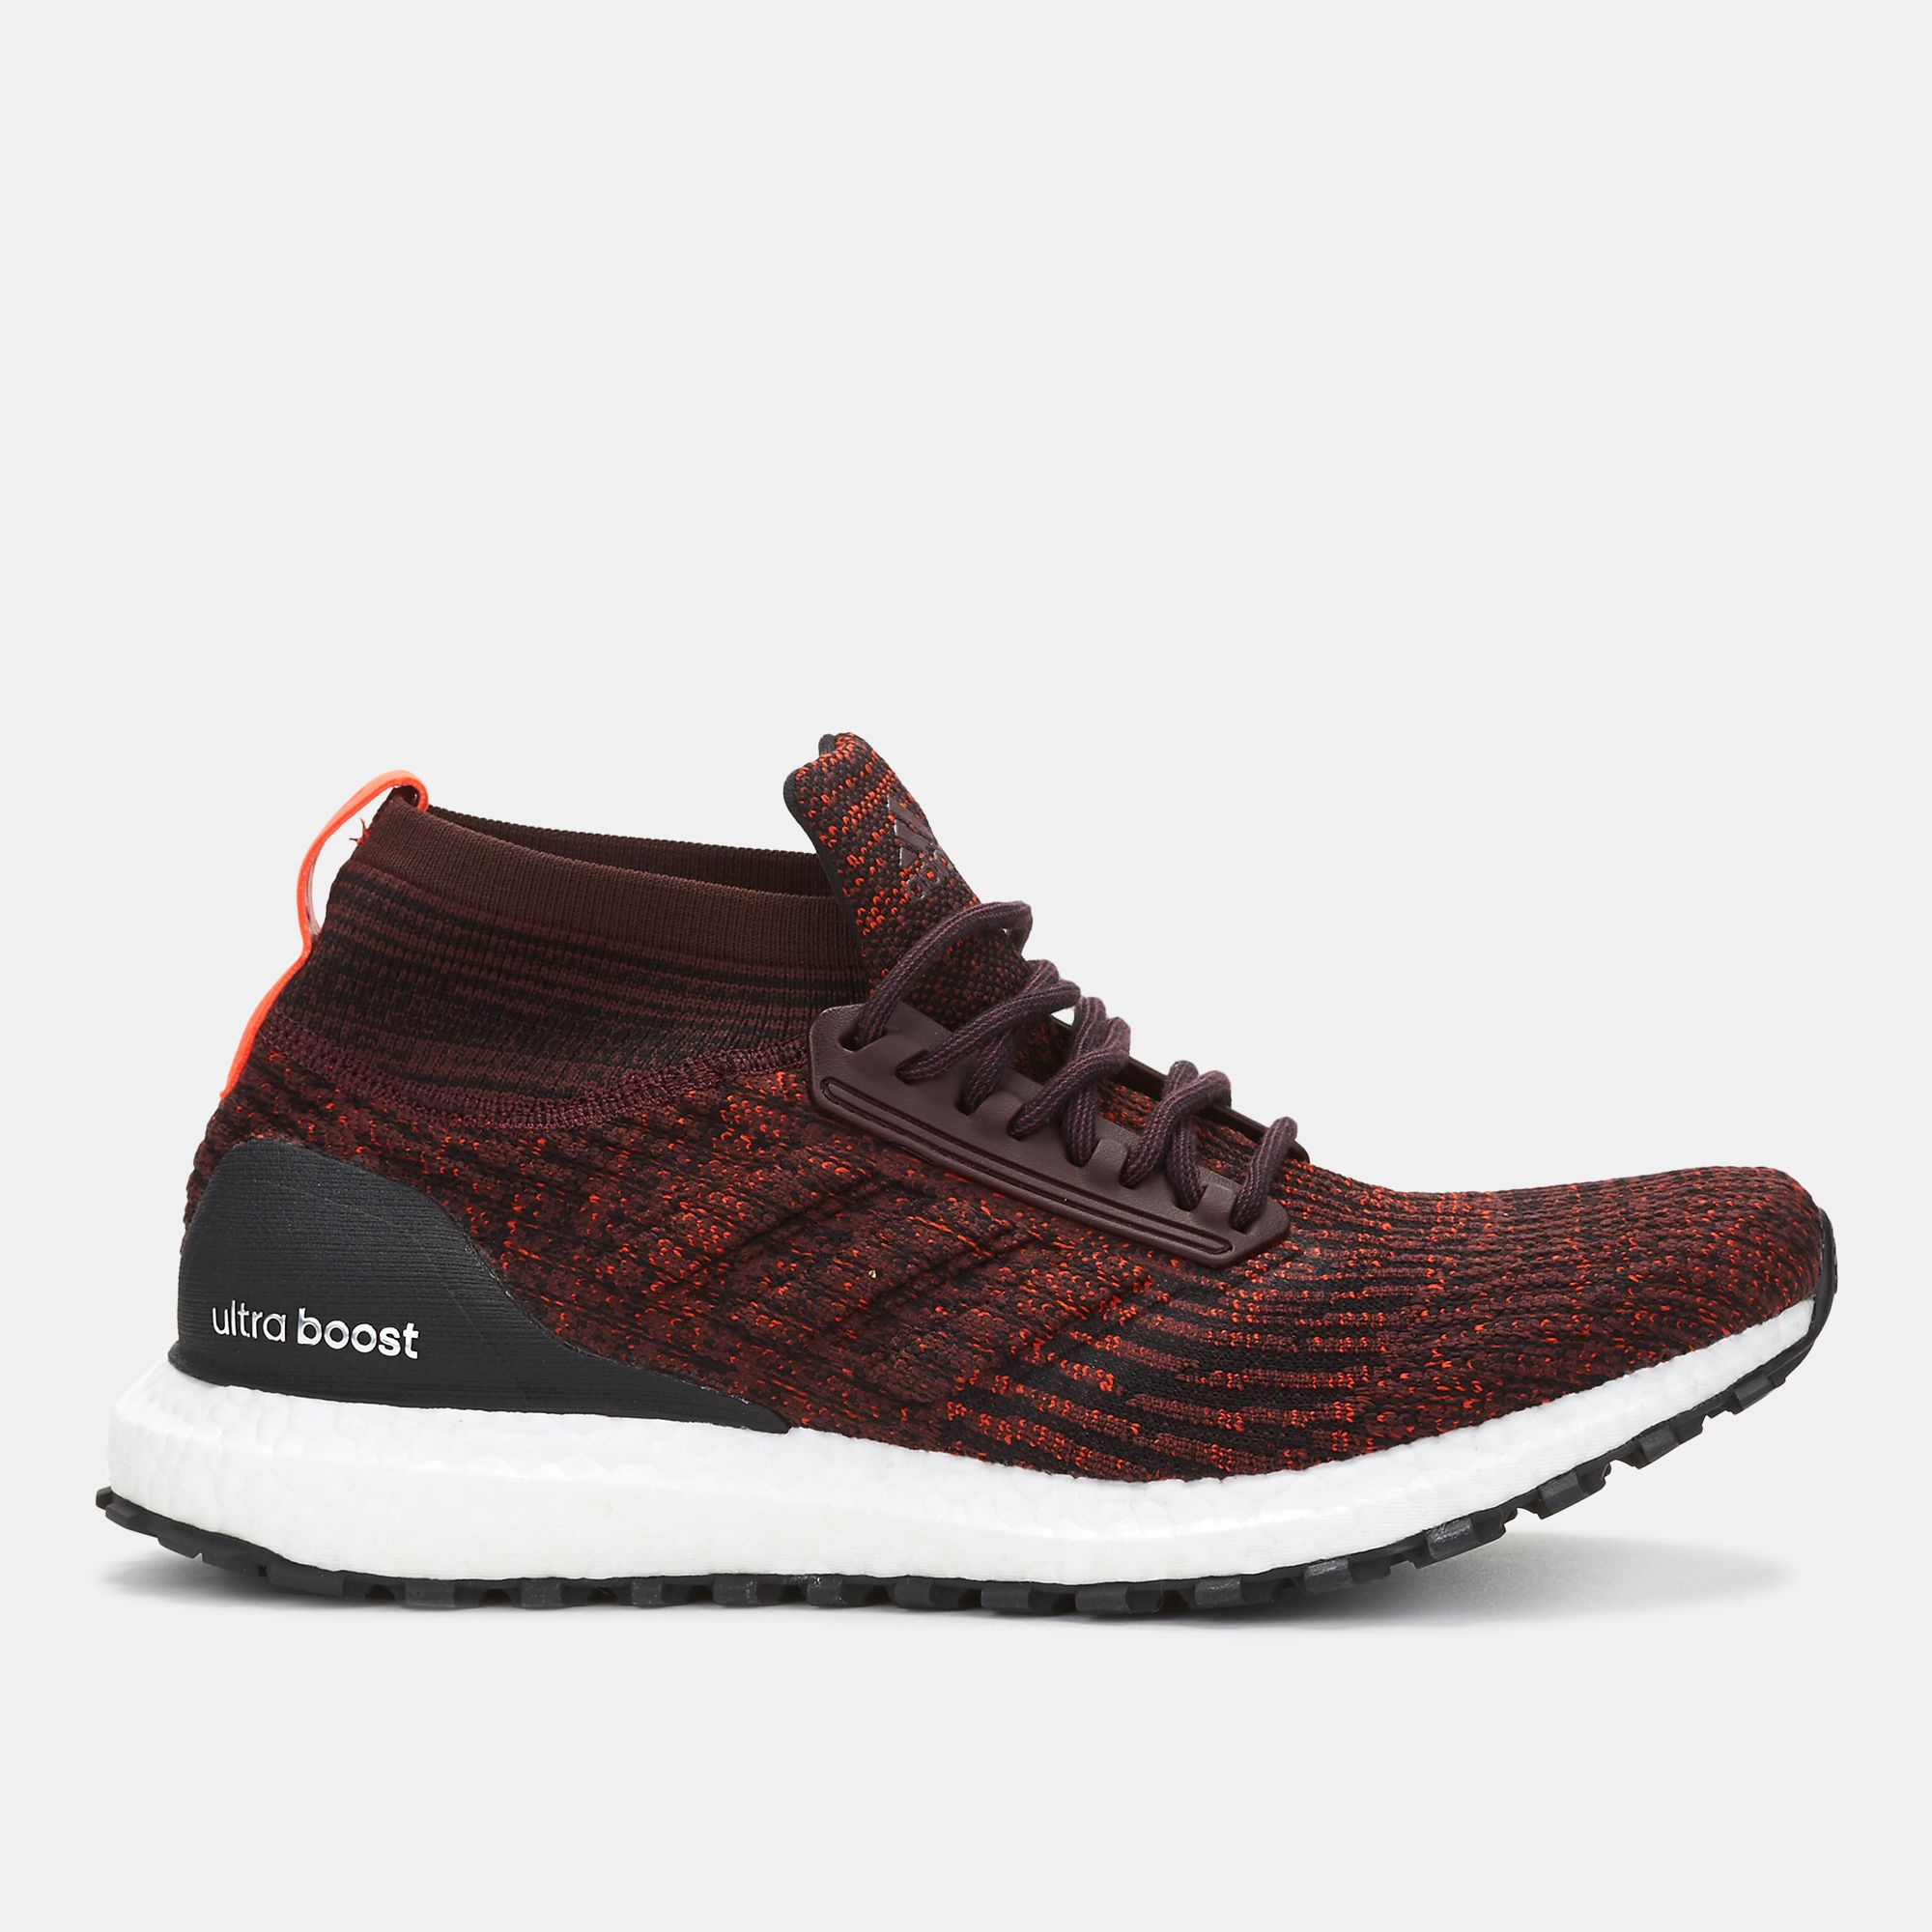 b40306e833ffd ... sweden adidas ultraboost all terrain shoe 7e97c 09830